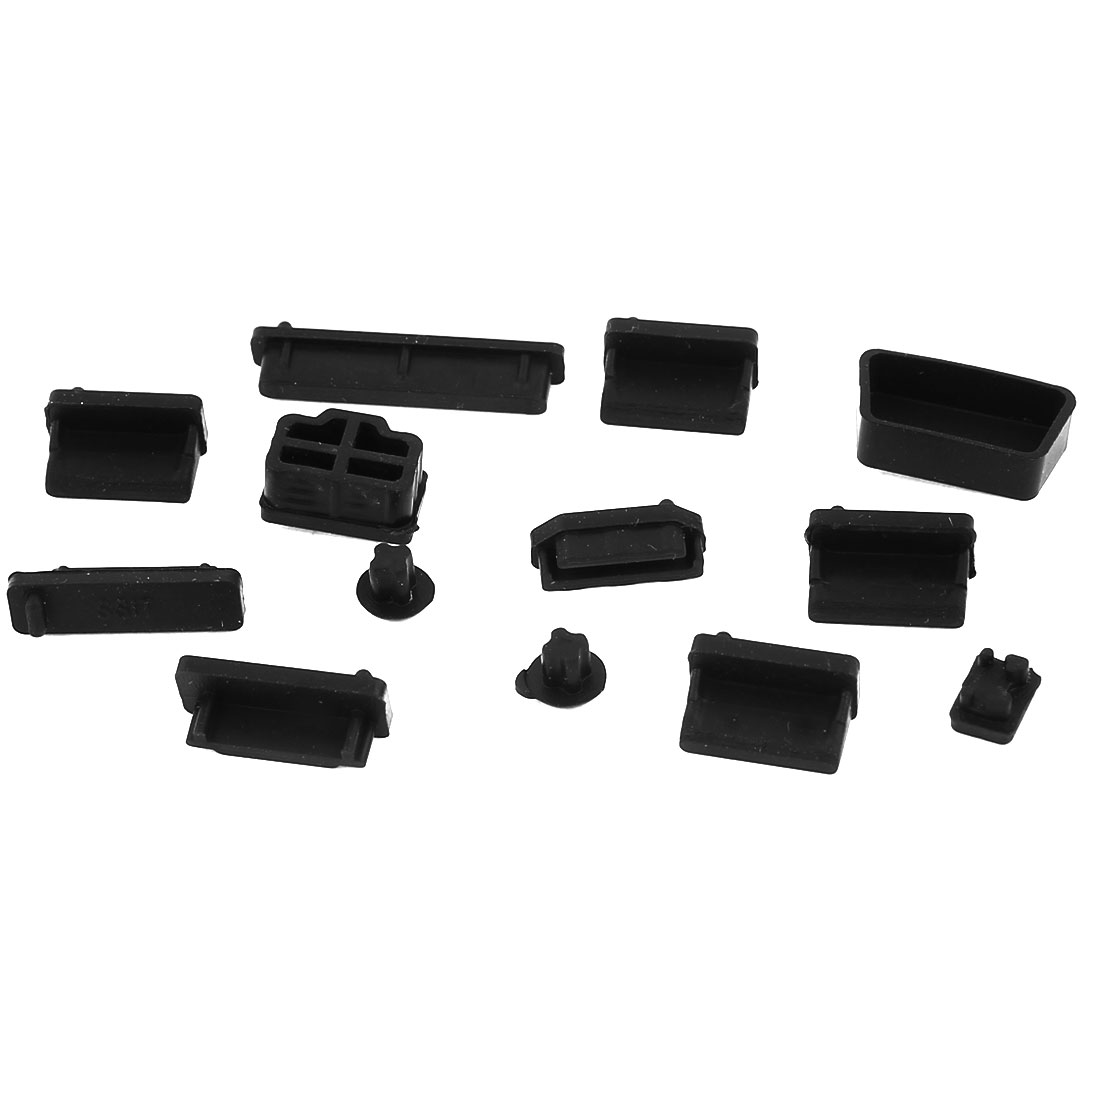 13 Pcs Protective Ports Cover Silicone Anti-Dust Plug Stopper Black for Laptop Notebook